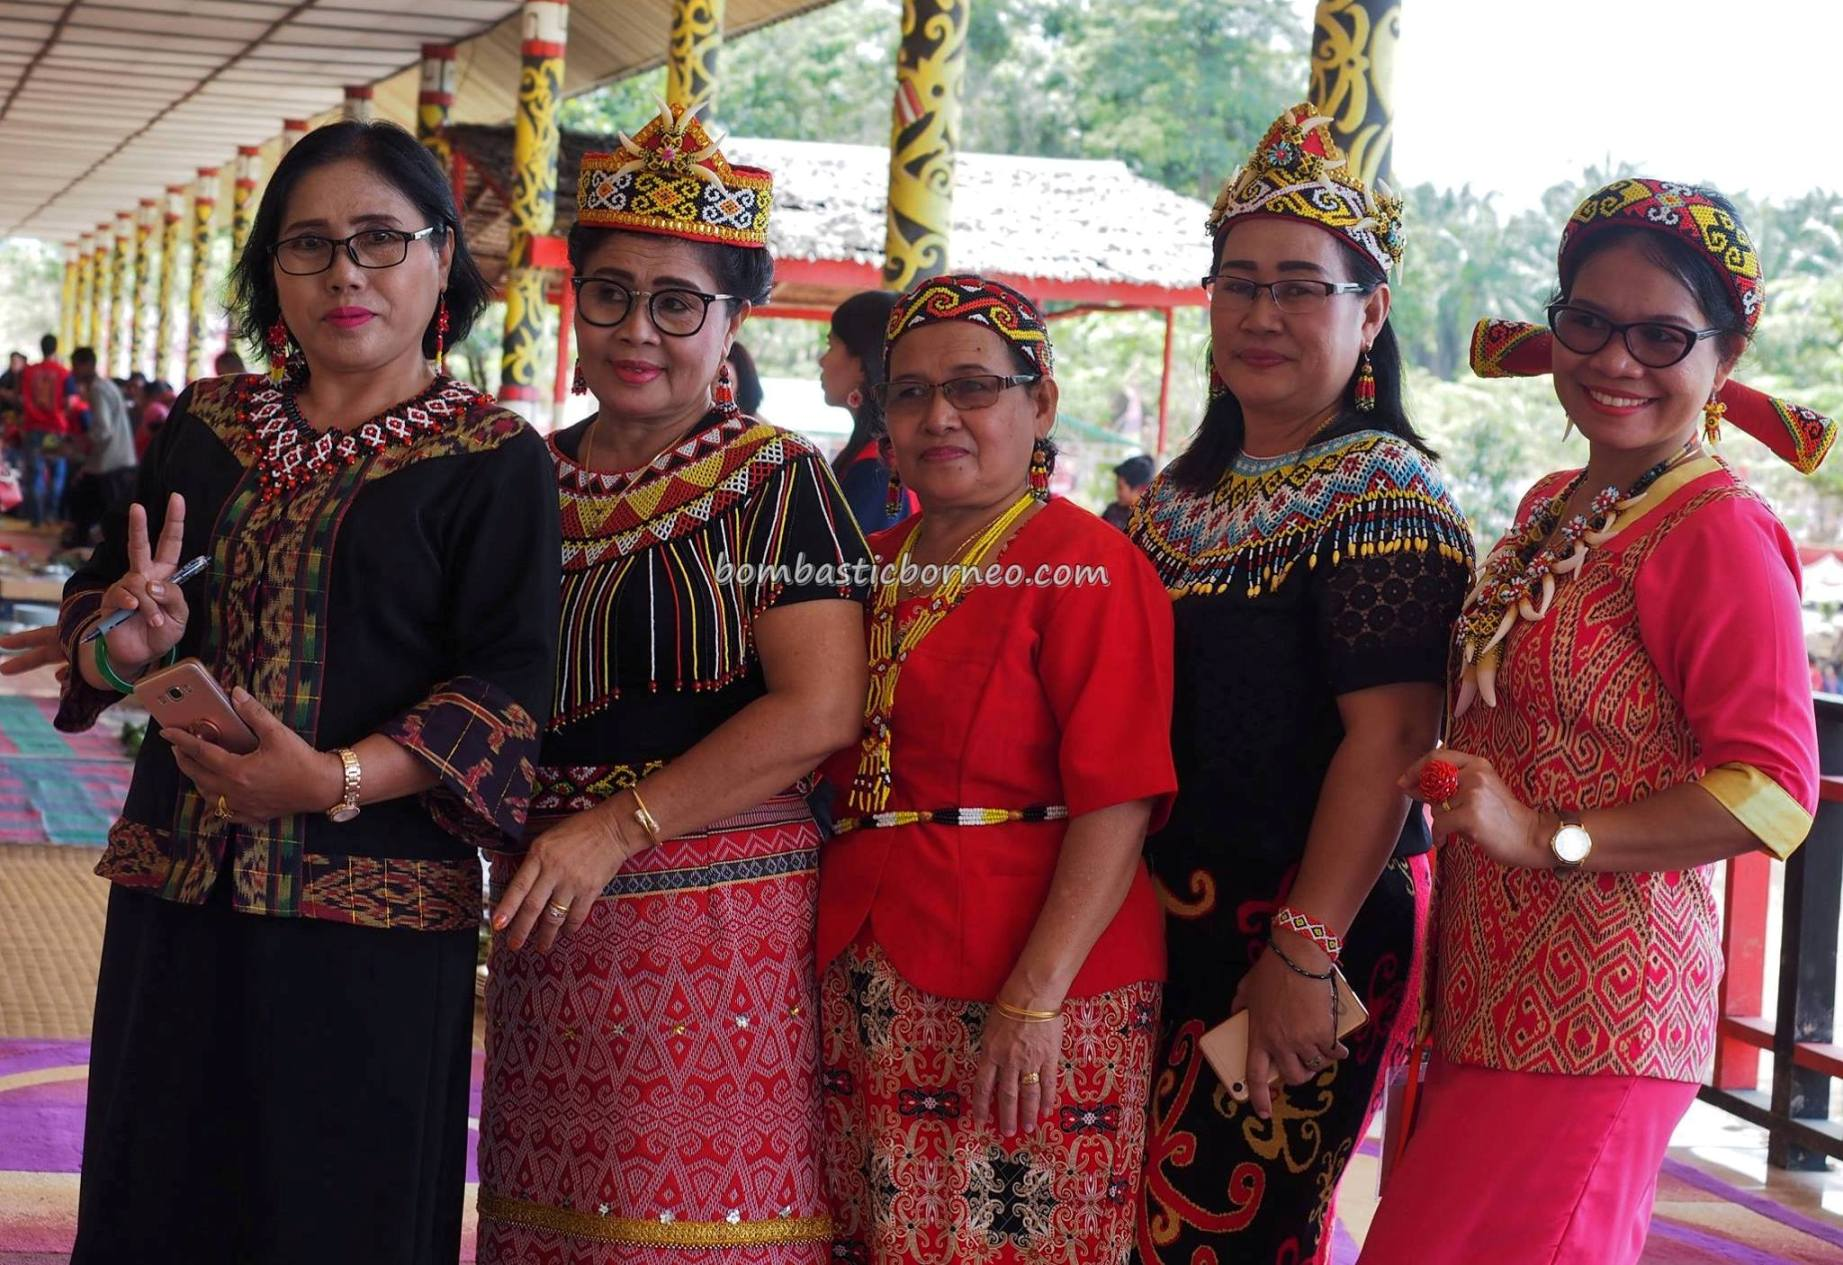 longhouse, Gawai Dayak, tribe, paddy harvest festival, thanksgiving, authentic, indigenous, culture, event, native, Tourism, tourist attraction, trans borneo, 婆罗洲西加里曼丹, 上侯原住民部落